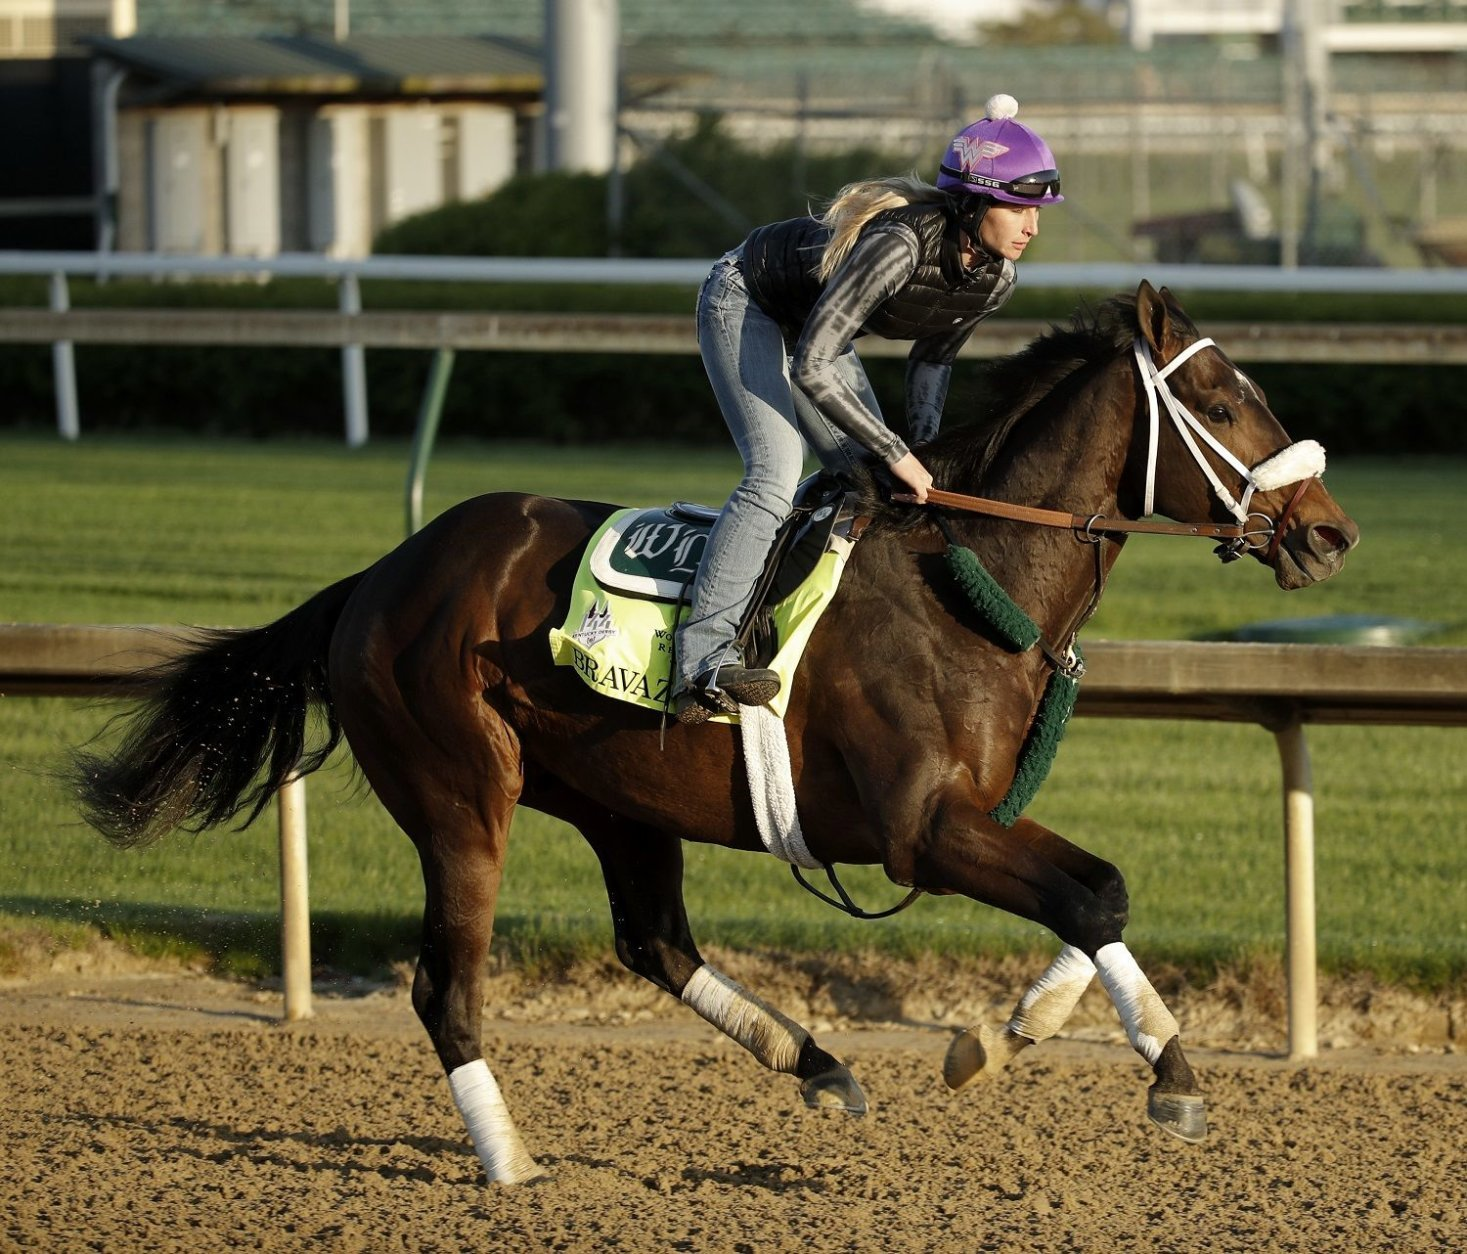 Kentucky Derby hopeful Bravazo runs during a morning workout at Churchill Downs Tuesday, May 1, 2018, in Louisville, Ky. The 144th running of the Kentucky Derby is scheduled for Saturday, May 5. (AP Photo/Charlie Riedel)